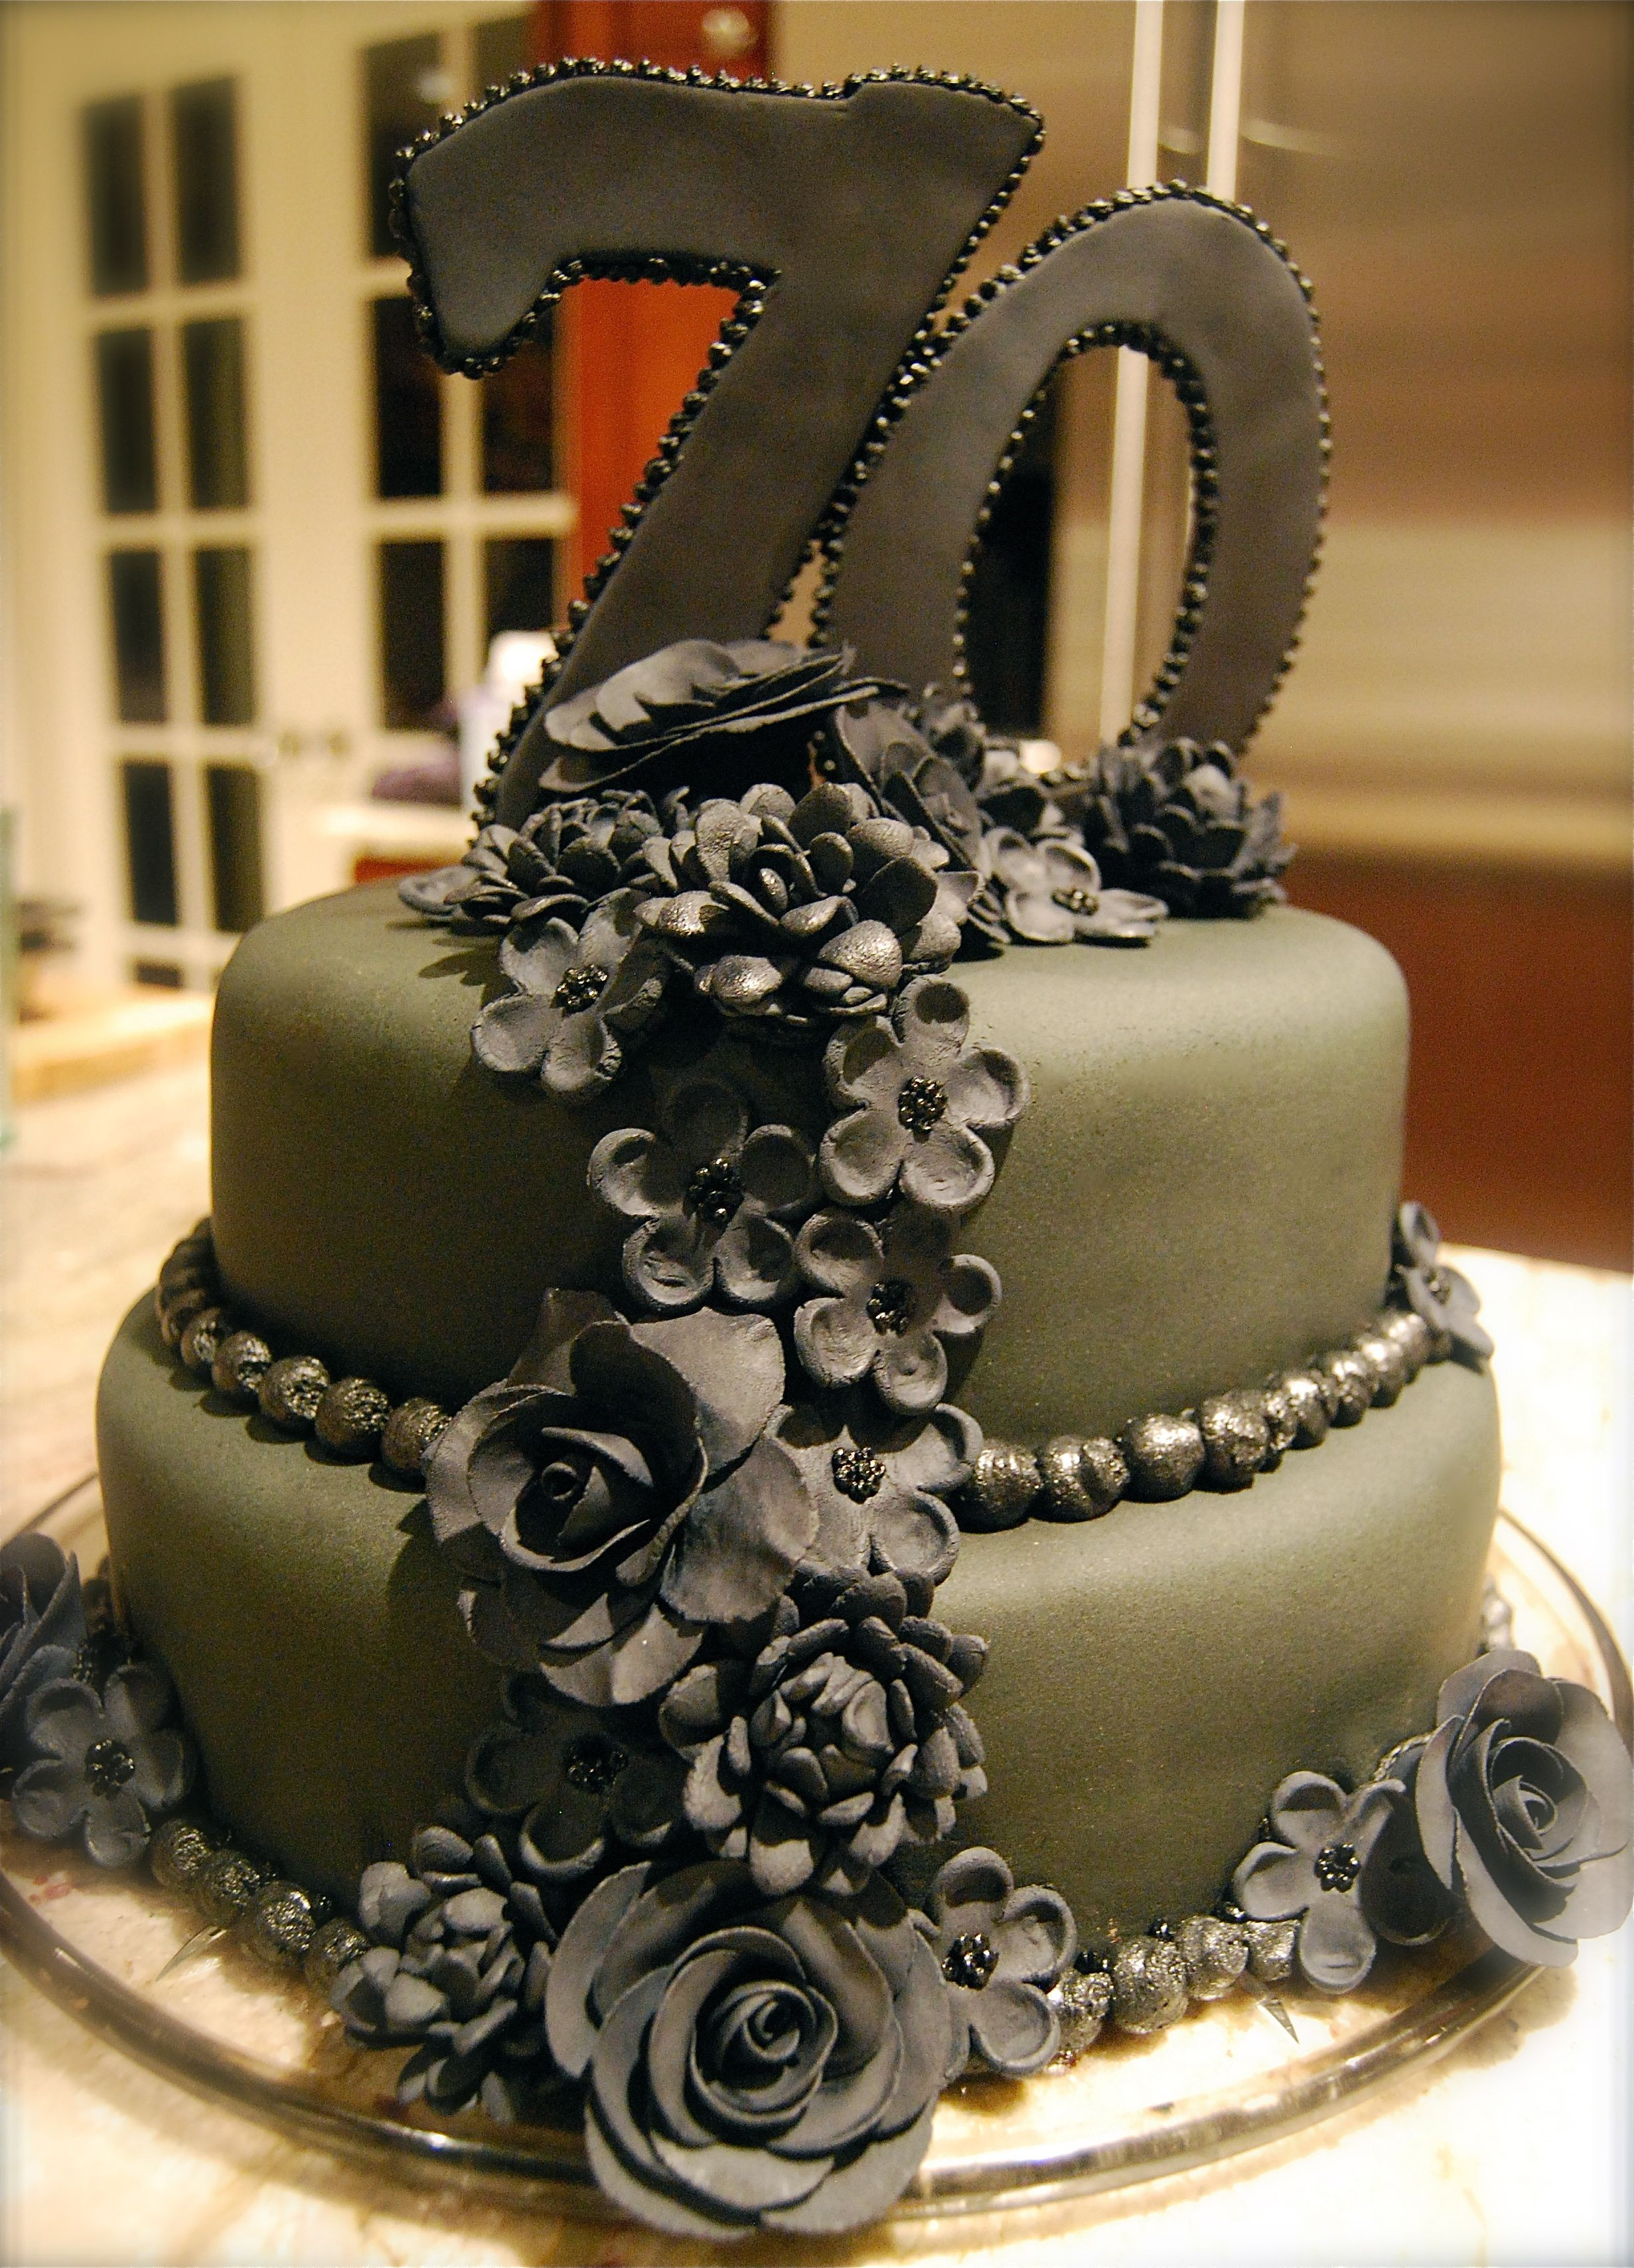 Best ideas about 70th Birthday Cake Ideas . Save or Pin 70th Birthday Cakes Cake Ideas and Designs Now.